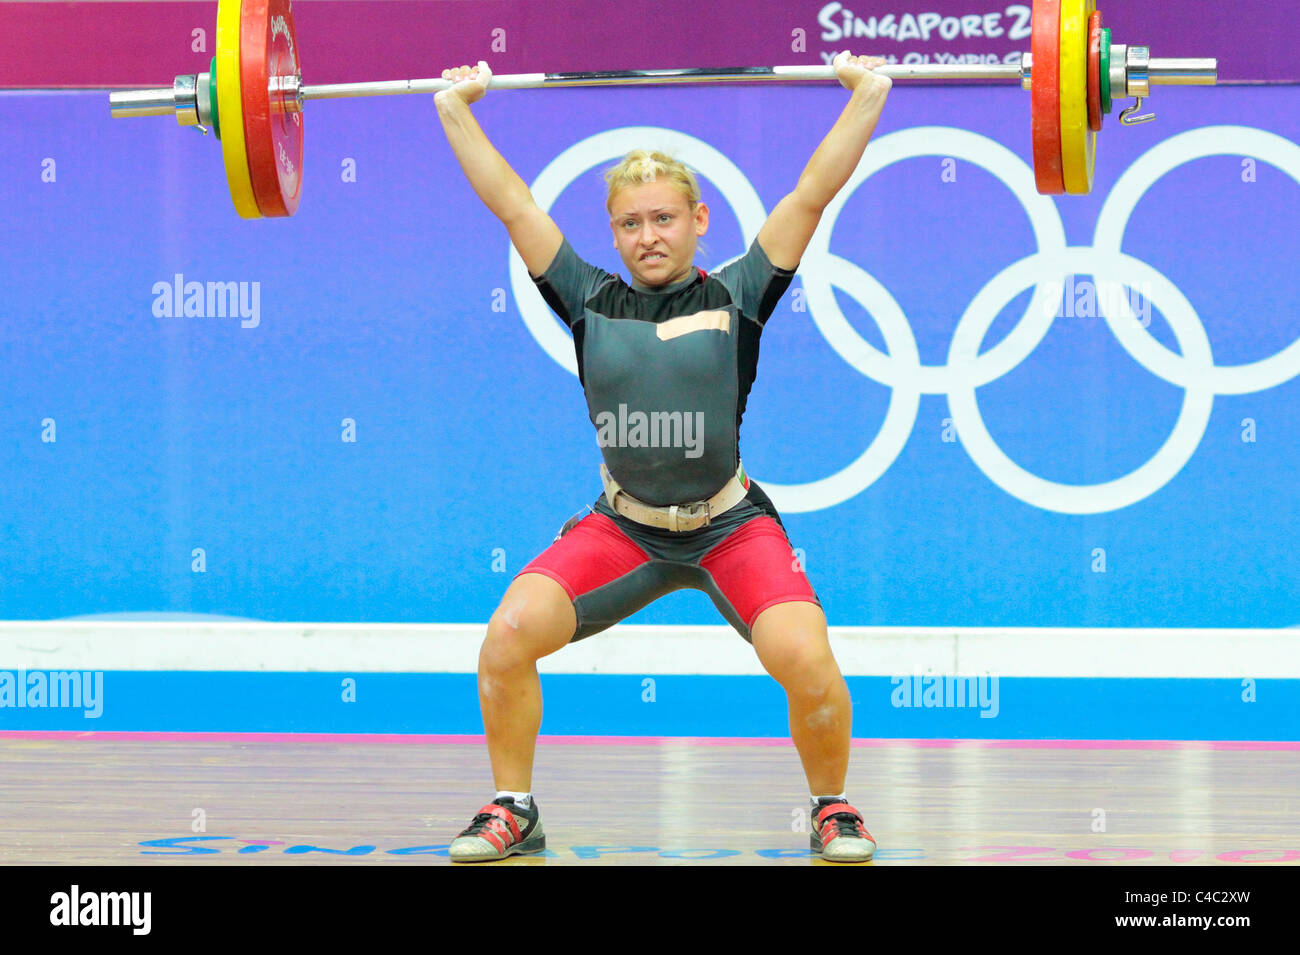 Boyanka Kostova of Bulgaria in action during her clean and jerk routine. - Stock Image